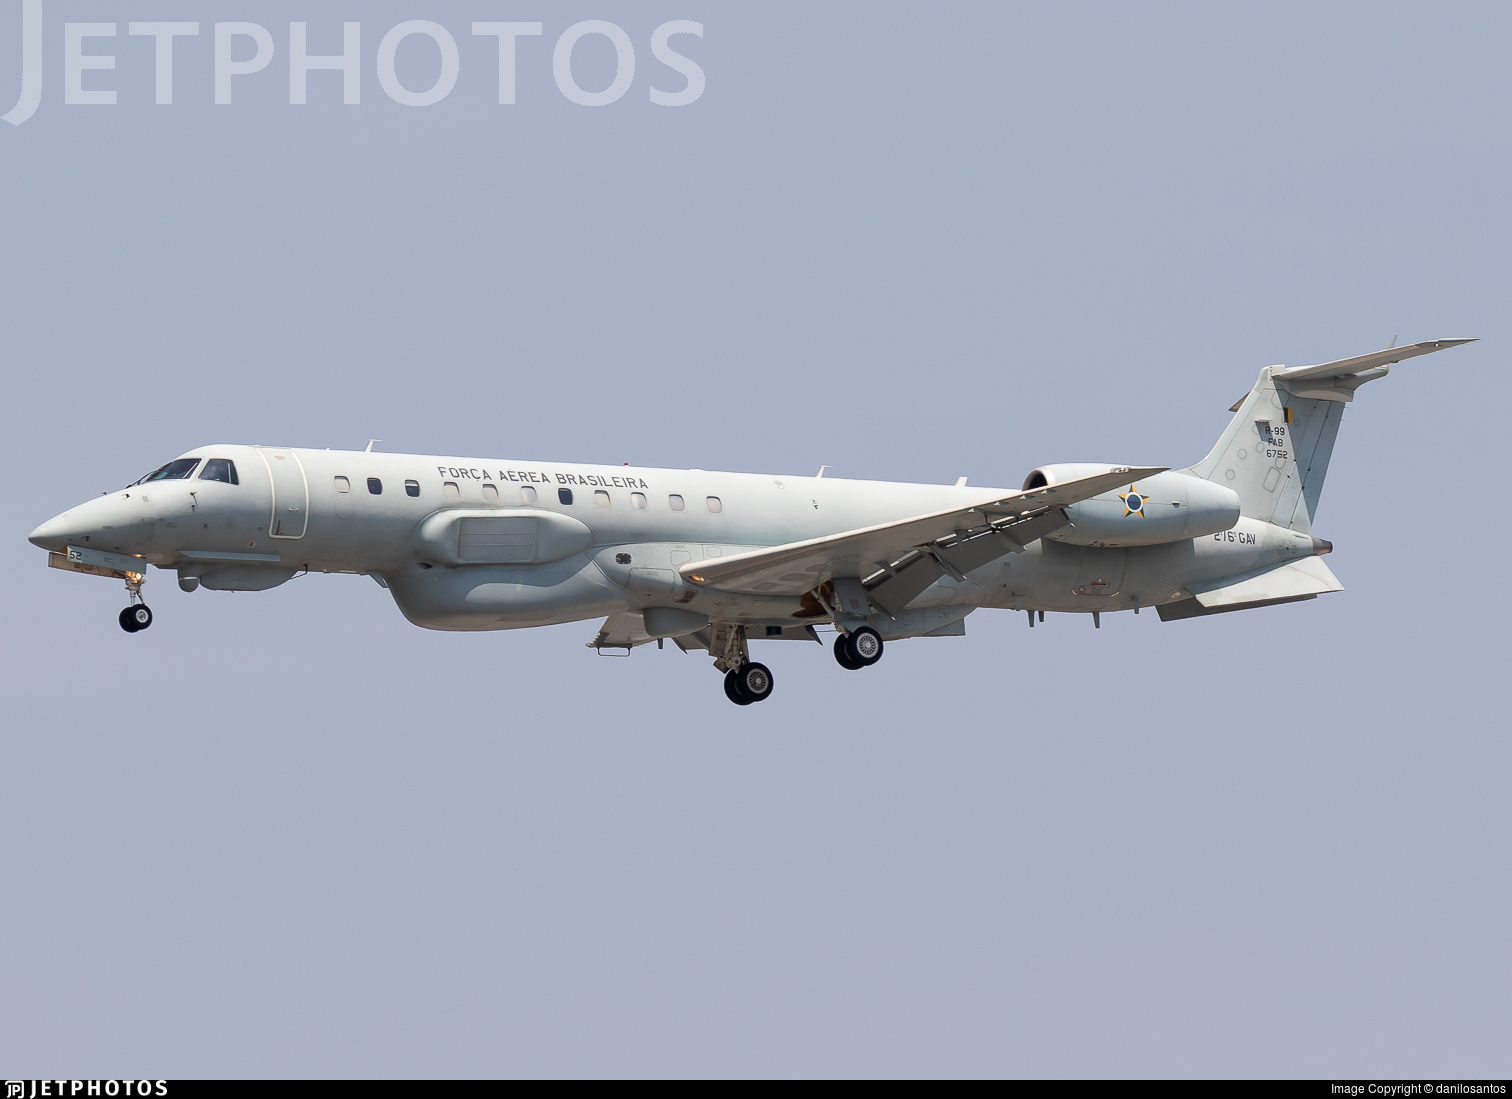 FAB6752 - Embraer R-99B - Brazil - Air Force